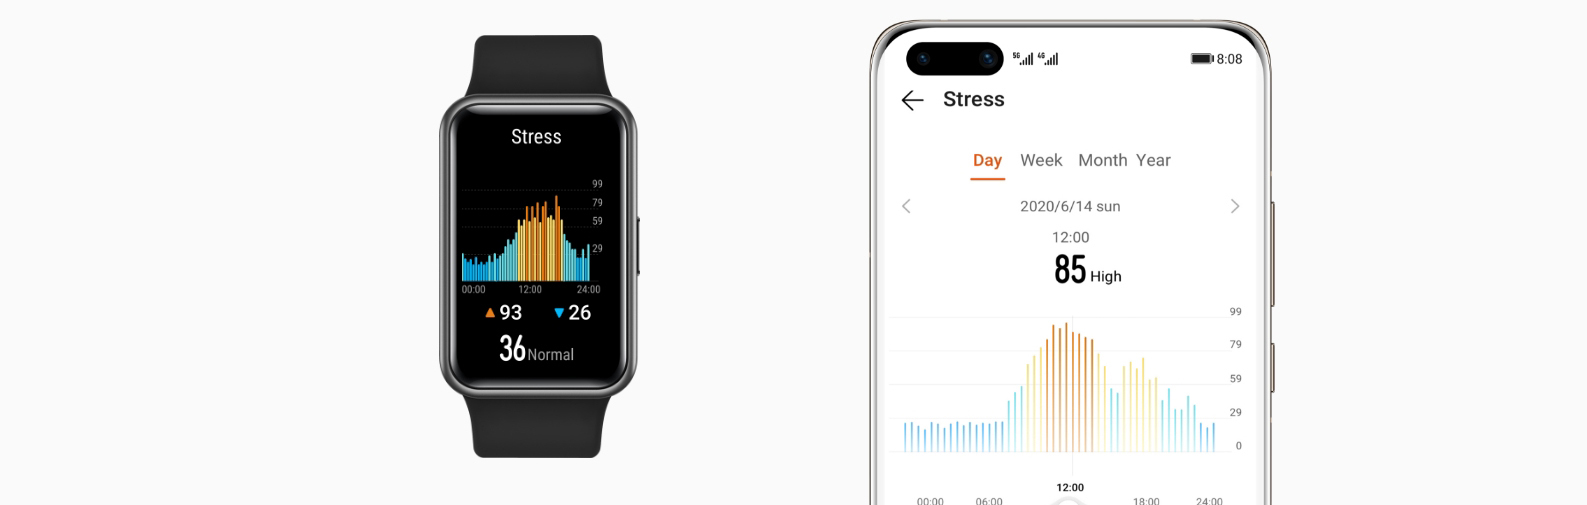 huawei watch fit-stress tracking